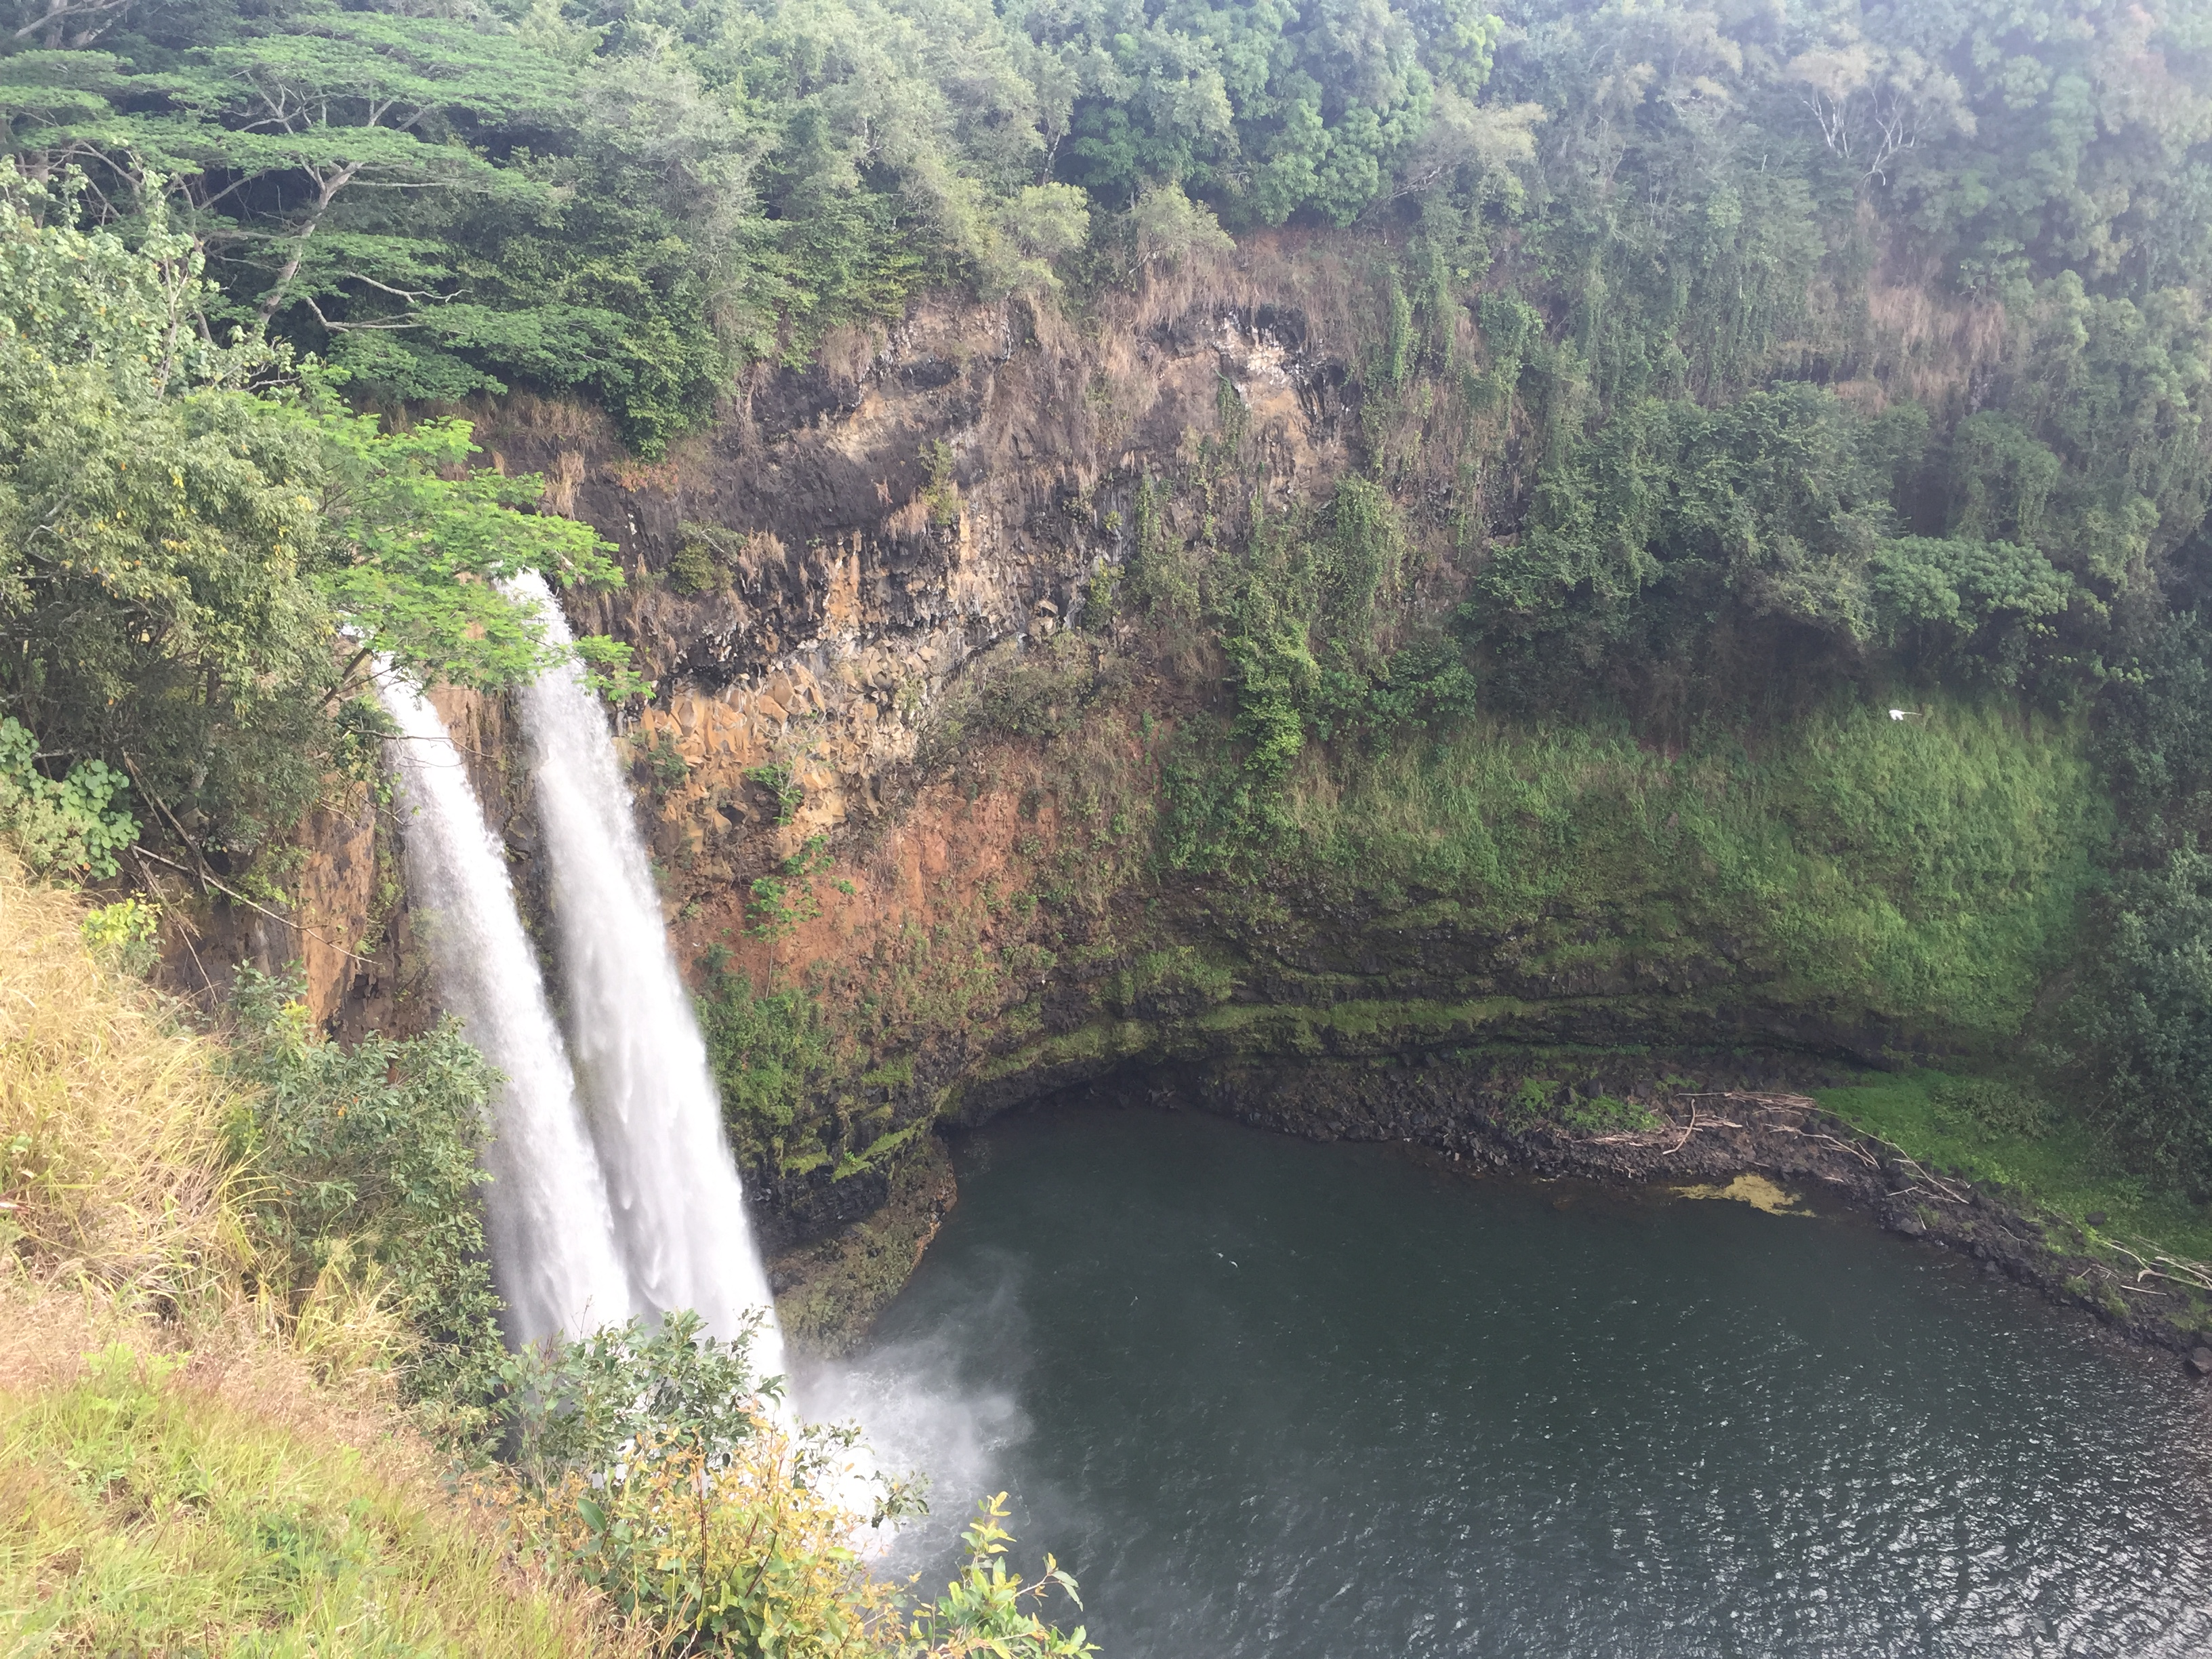 Wailua Falls, which feeds into the Wailua River